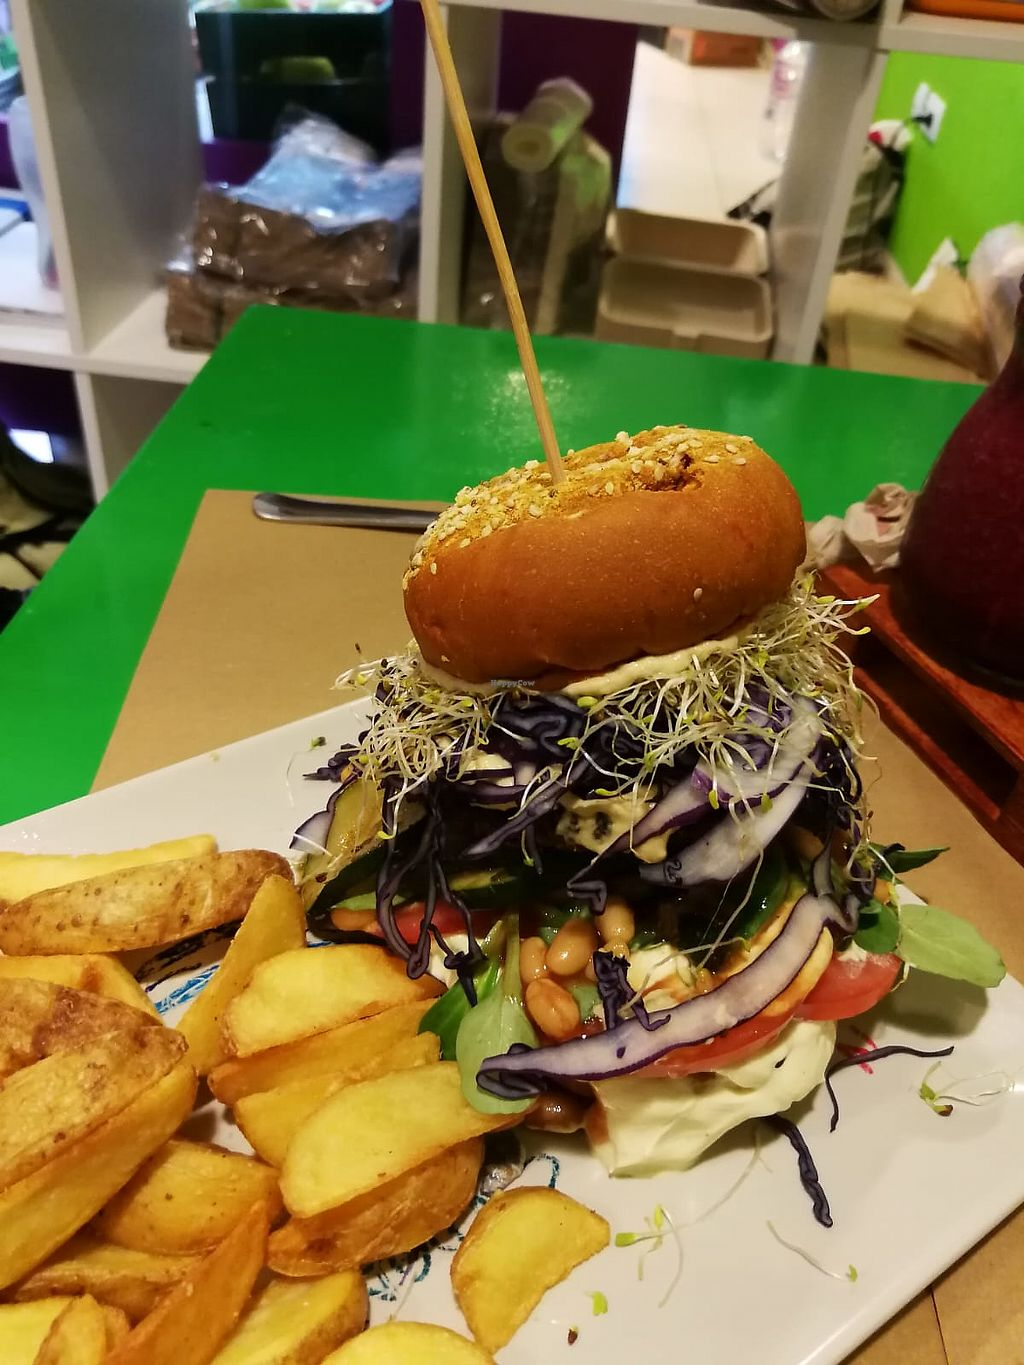 "Photo of Delicias y Namaste  by <a href=""/members/profile/rbrimel"">rbrimel</a> <br/>Súper hamburguesa con papas fritas  <br/> May 21, 2018  - <a href='/contact/abuse/image/80824/402920'>Report</a>"